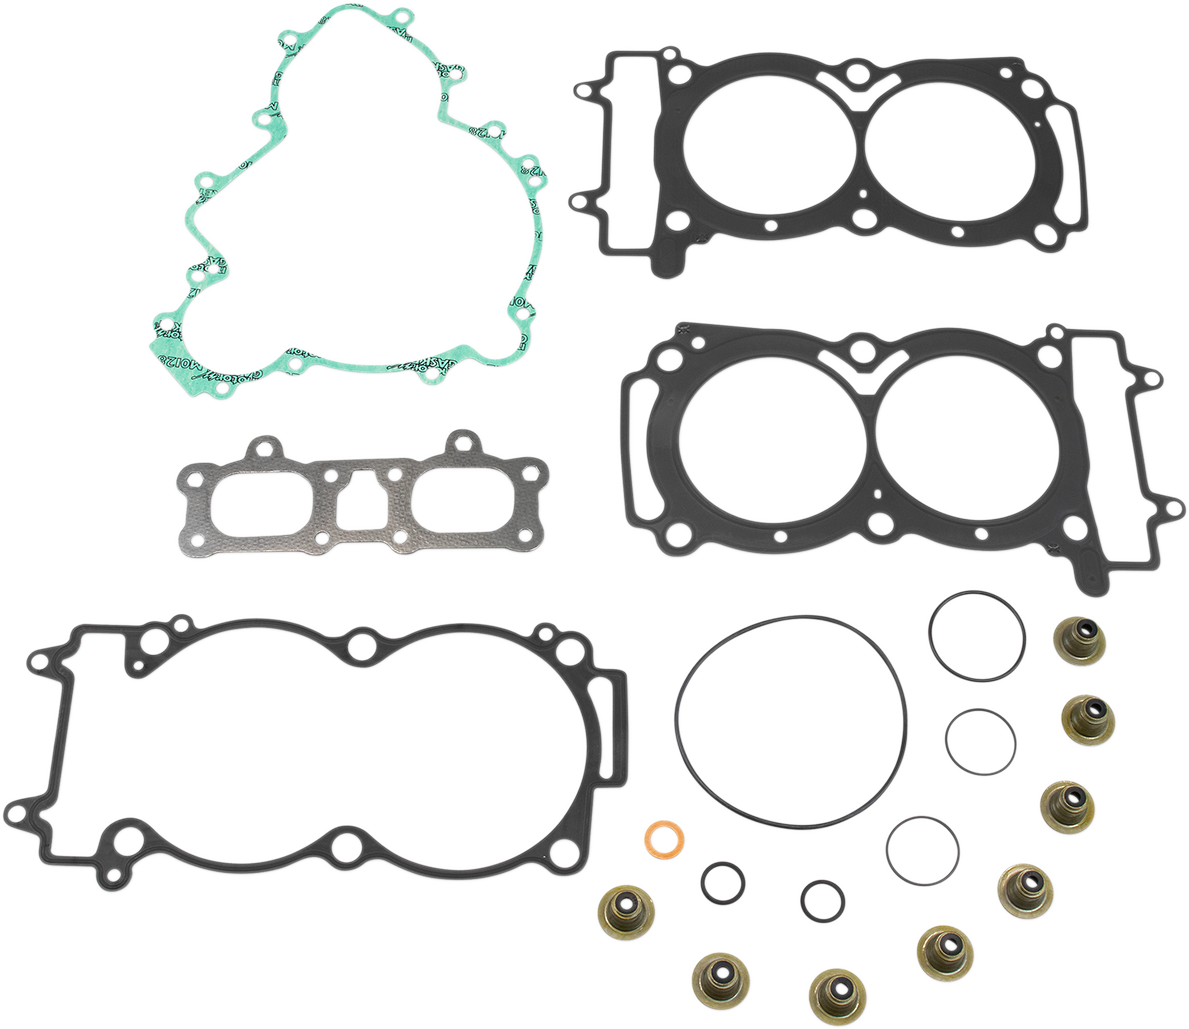 Athena Complete UTV Engine Gasket Kit for 14-16 Polaris Ranger RXR XP 1000